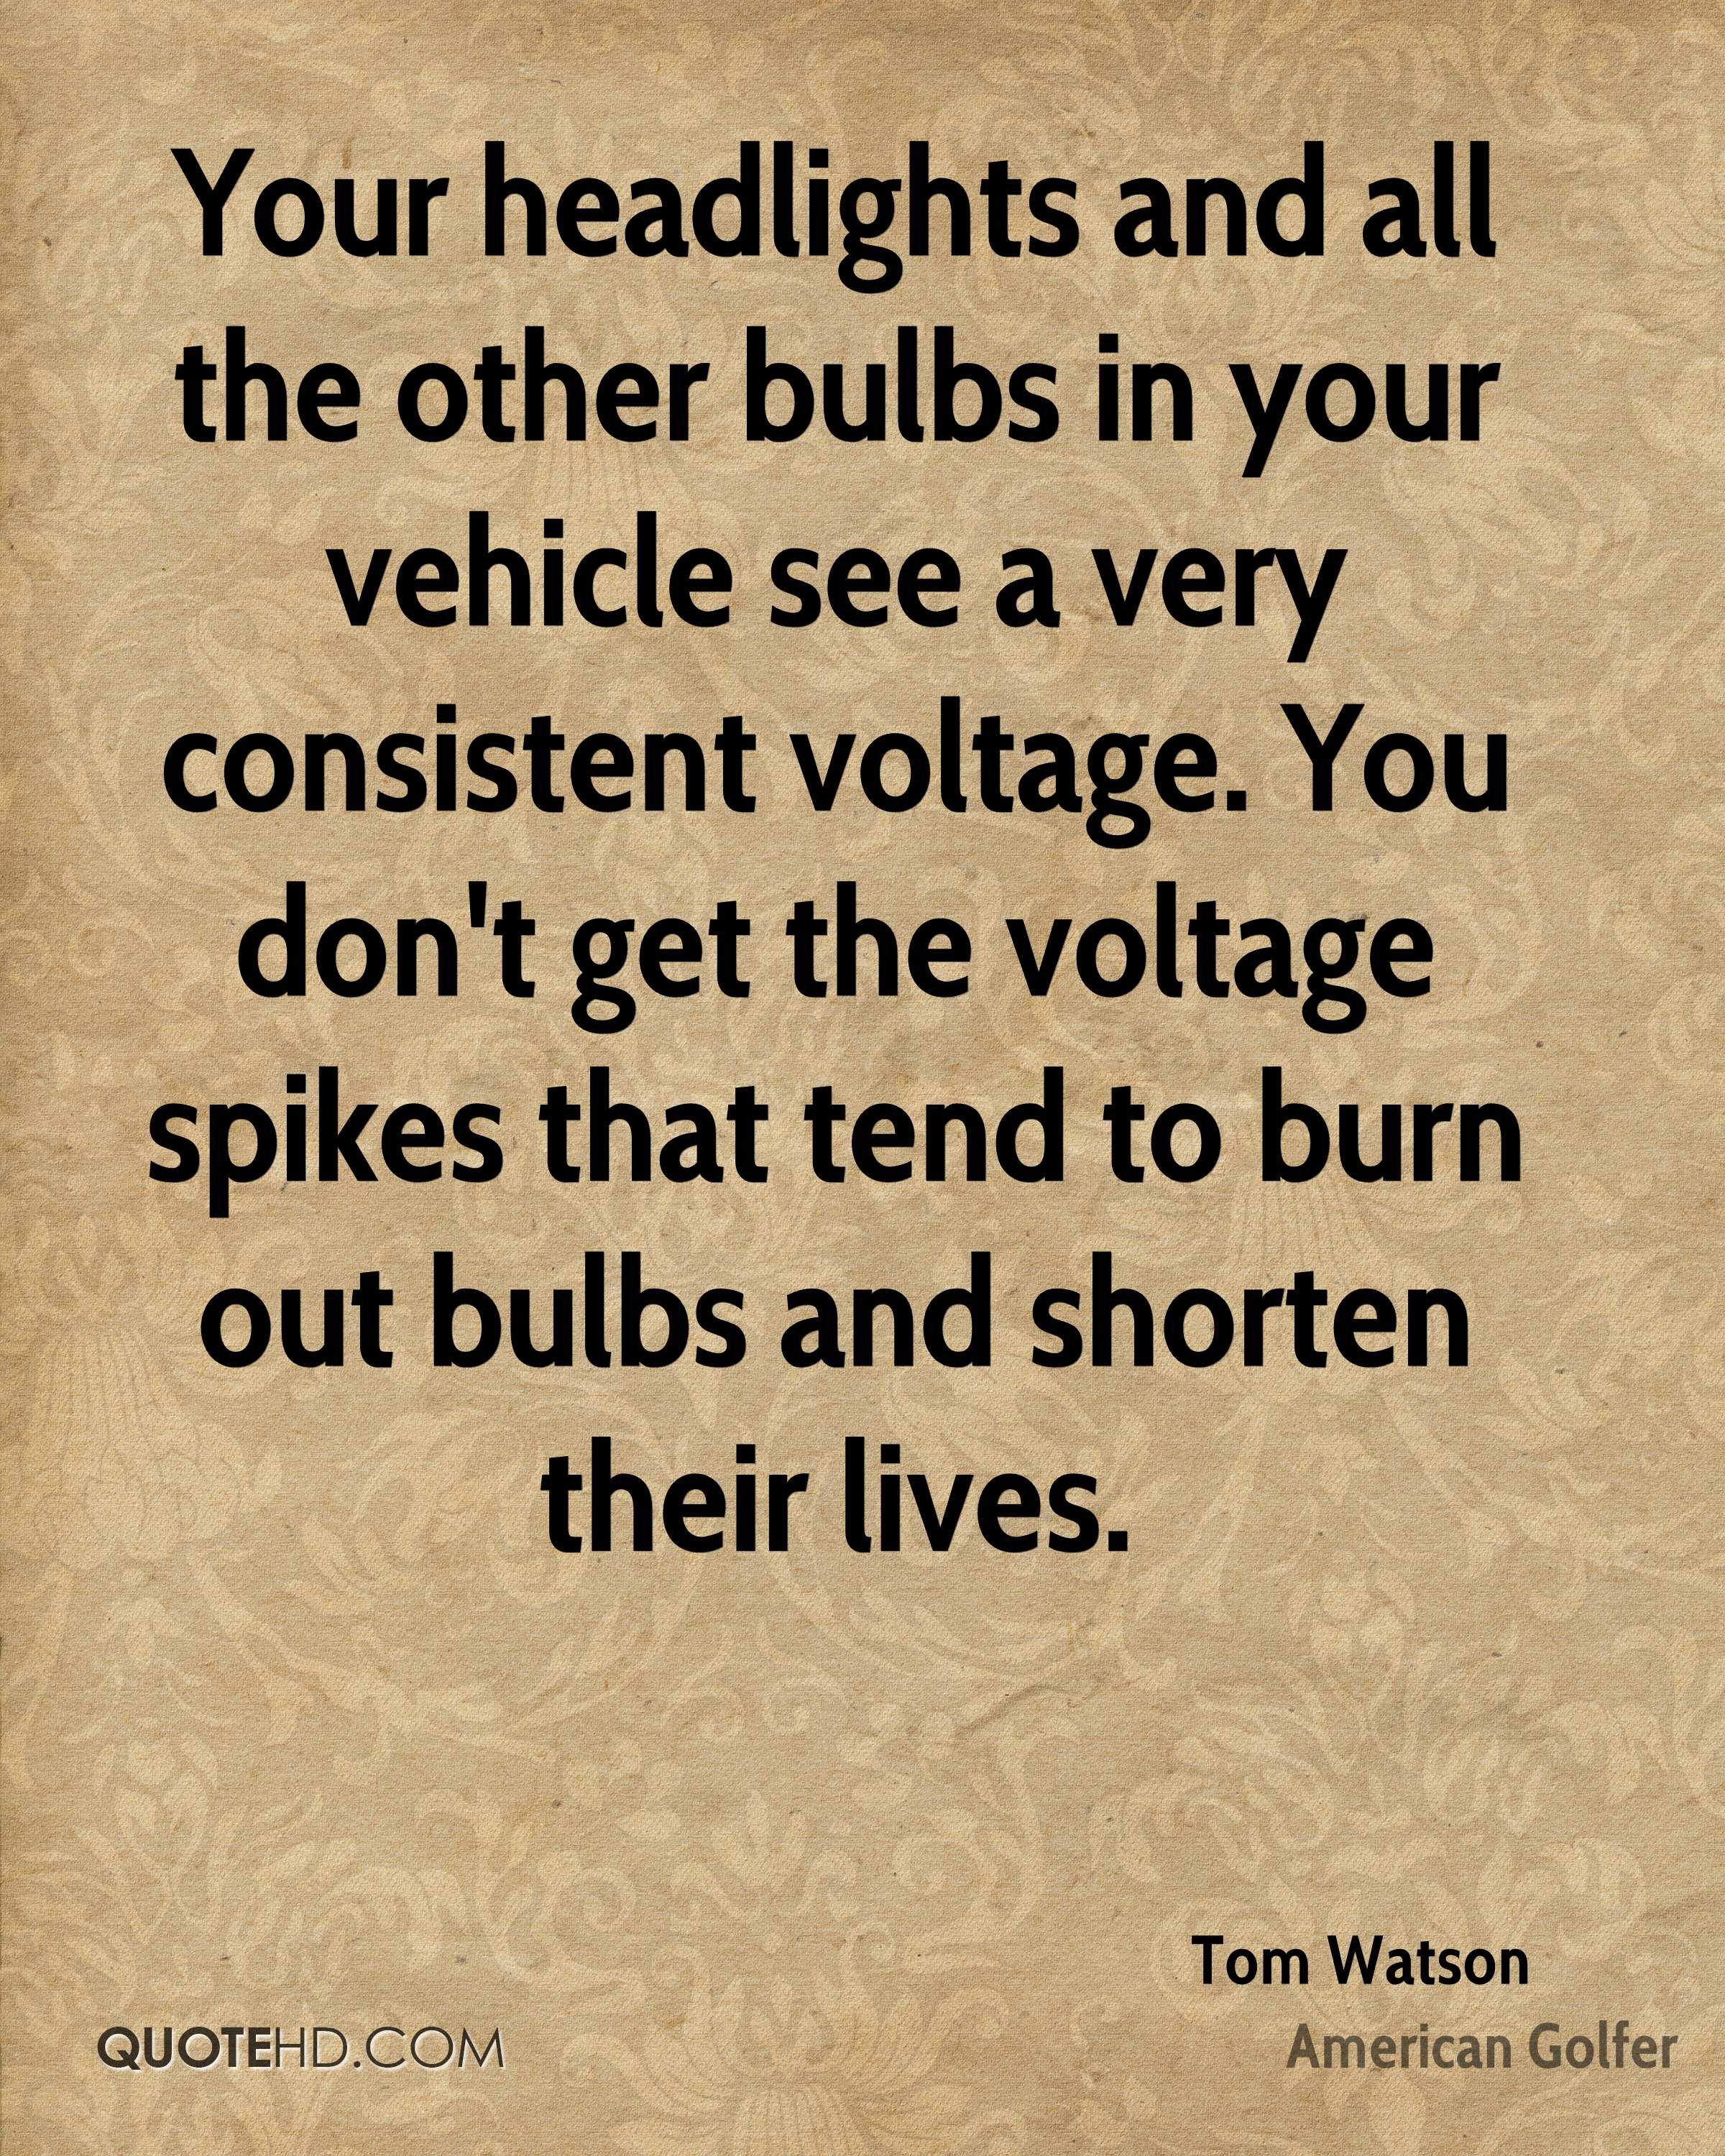 Your headlights and all the other bulbs in your vehicle see a very consistent voltage. You don't get the voltage spikes that tend to burn out bulbs and shorten their lives.